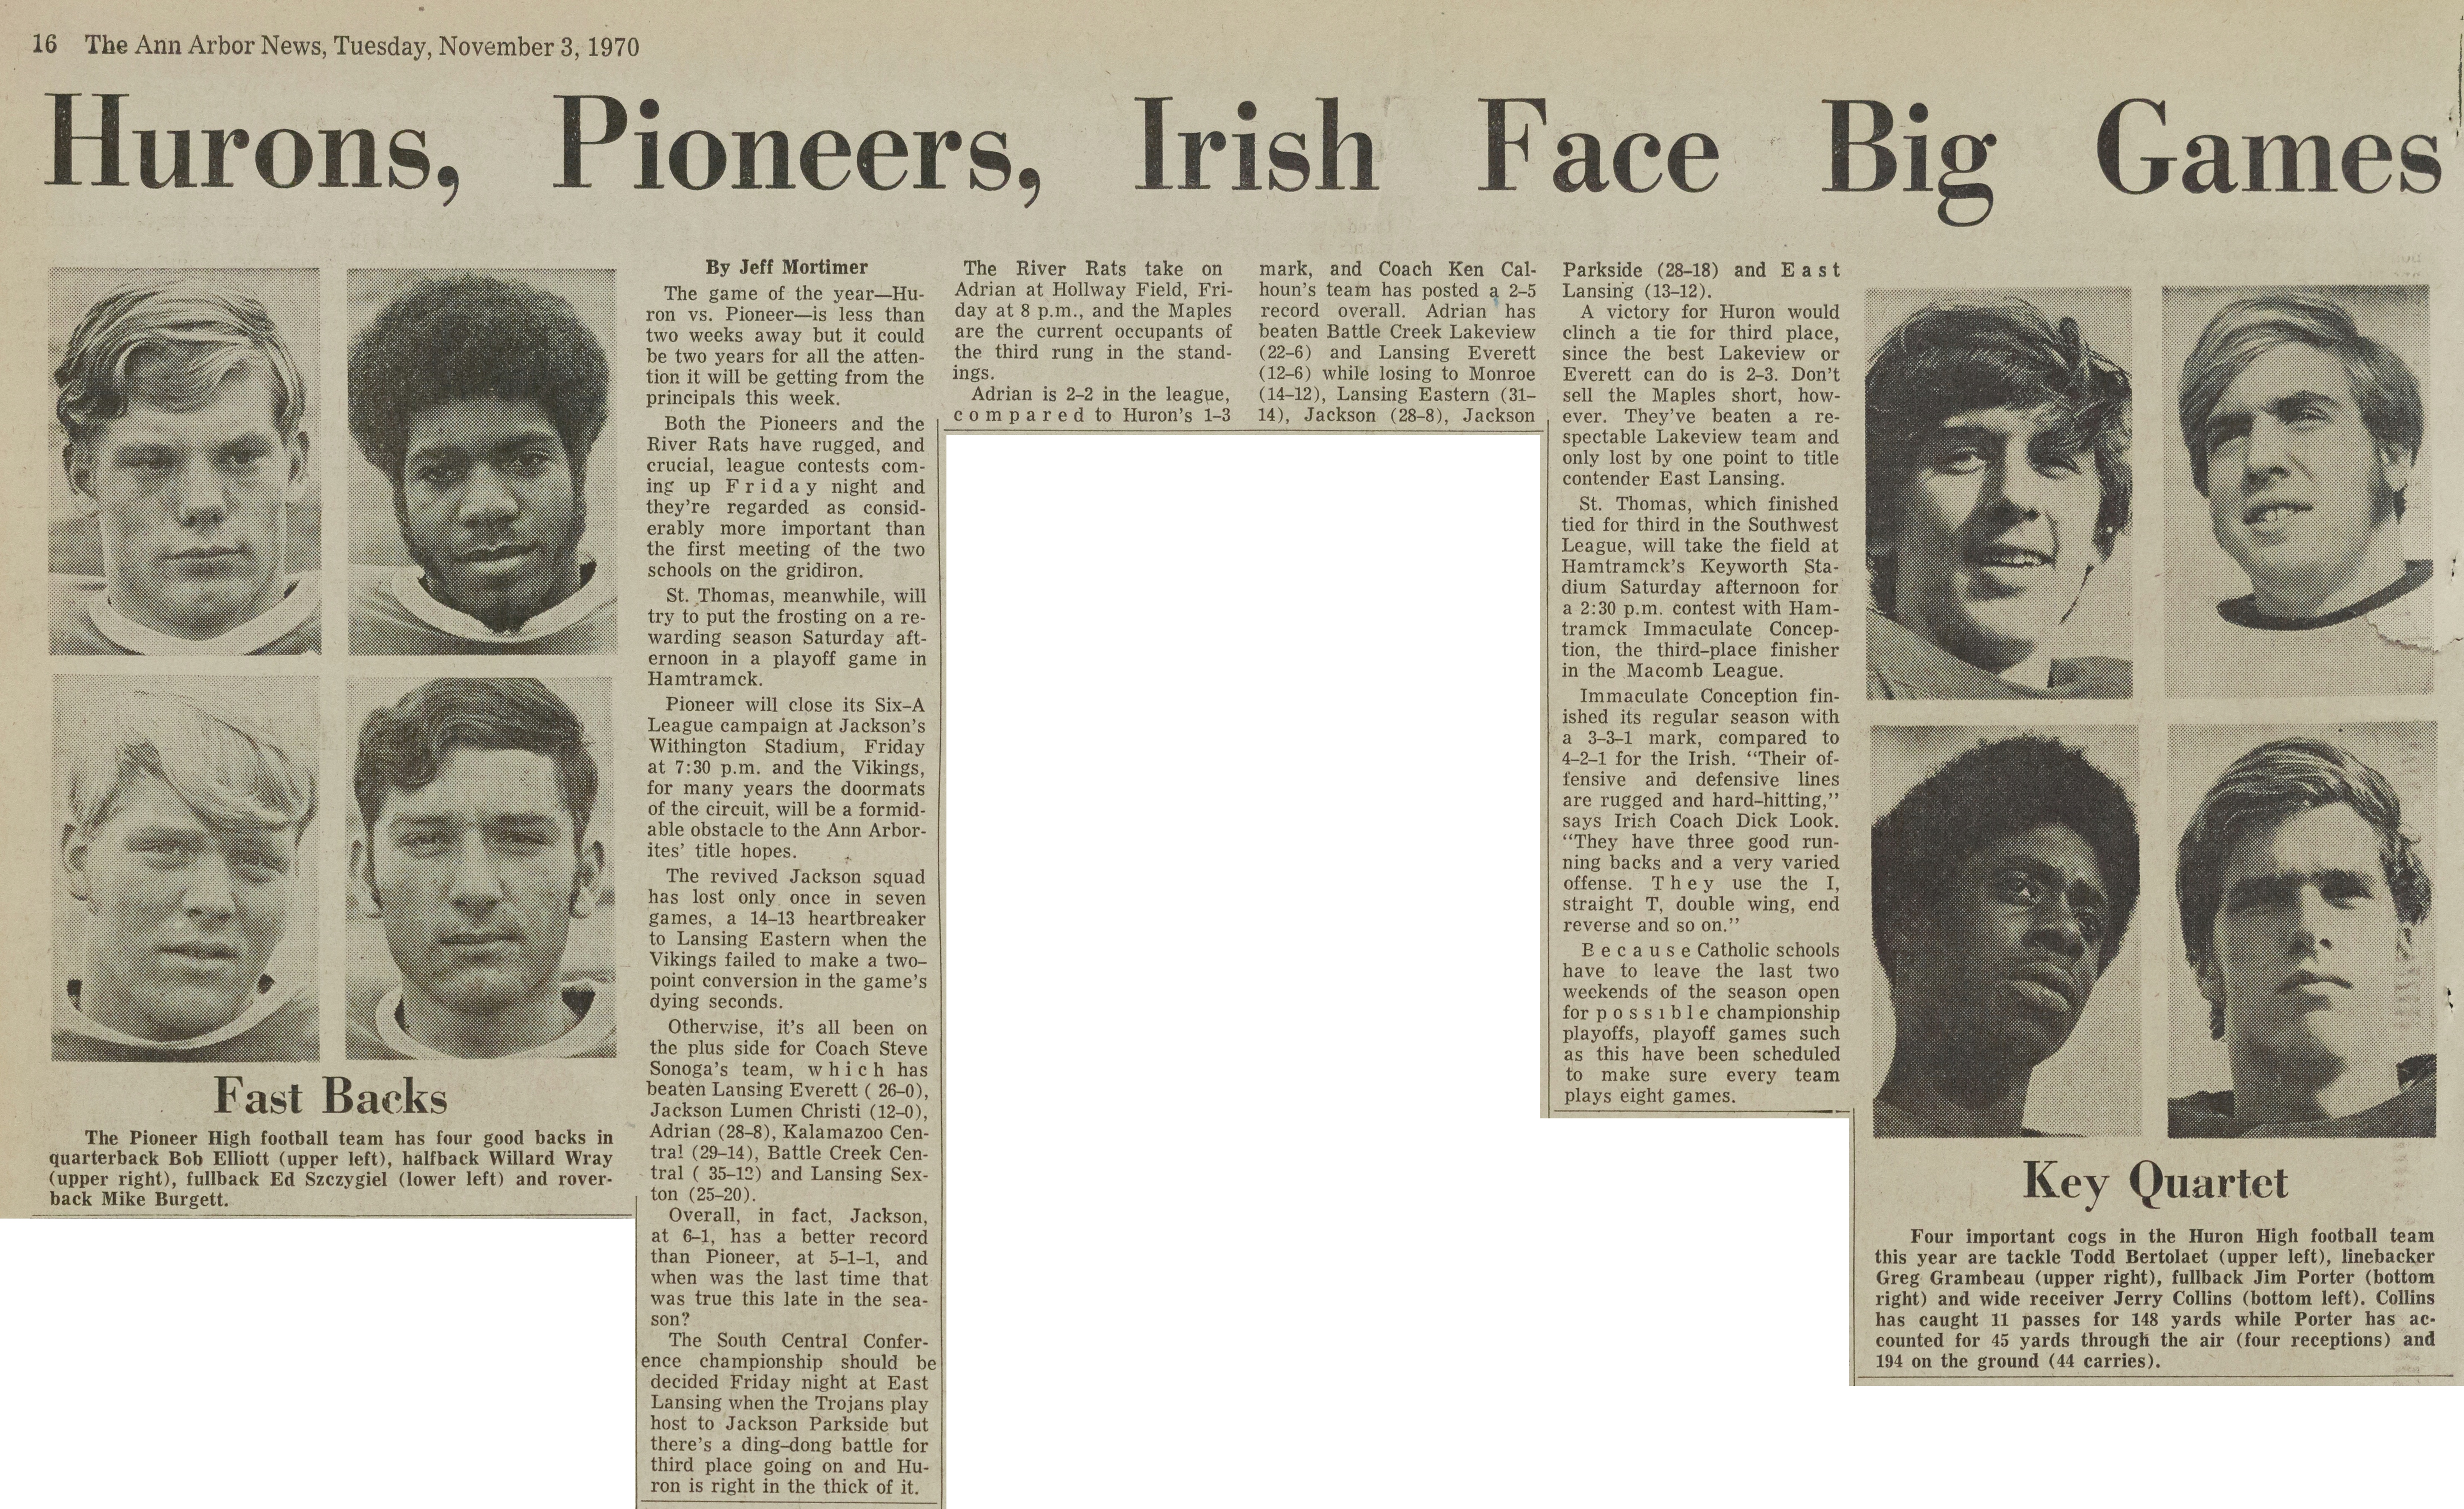 Hurons, Pioneers, Irish Face Big Games image